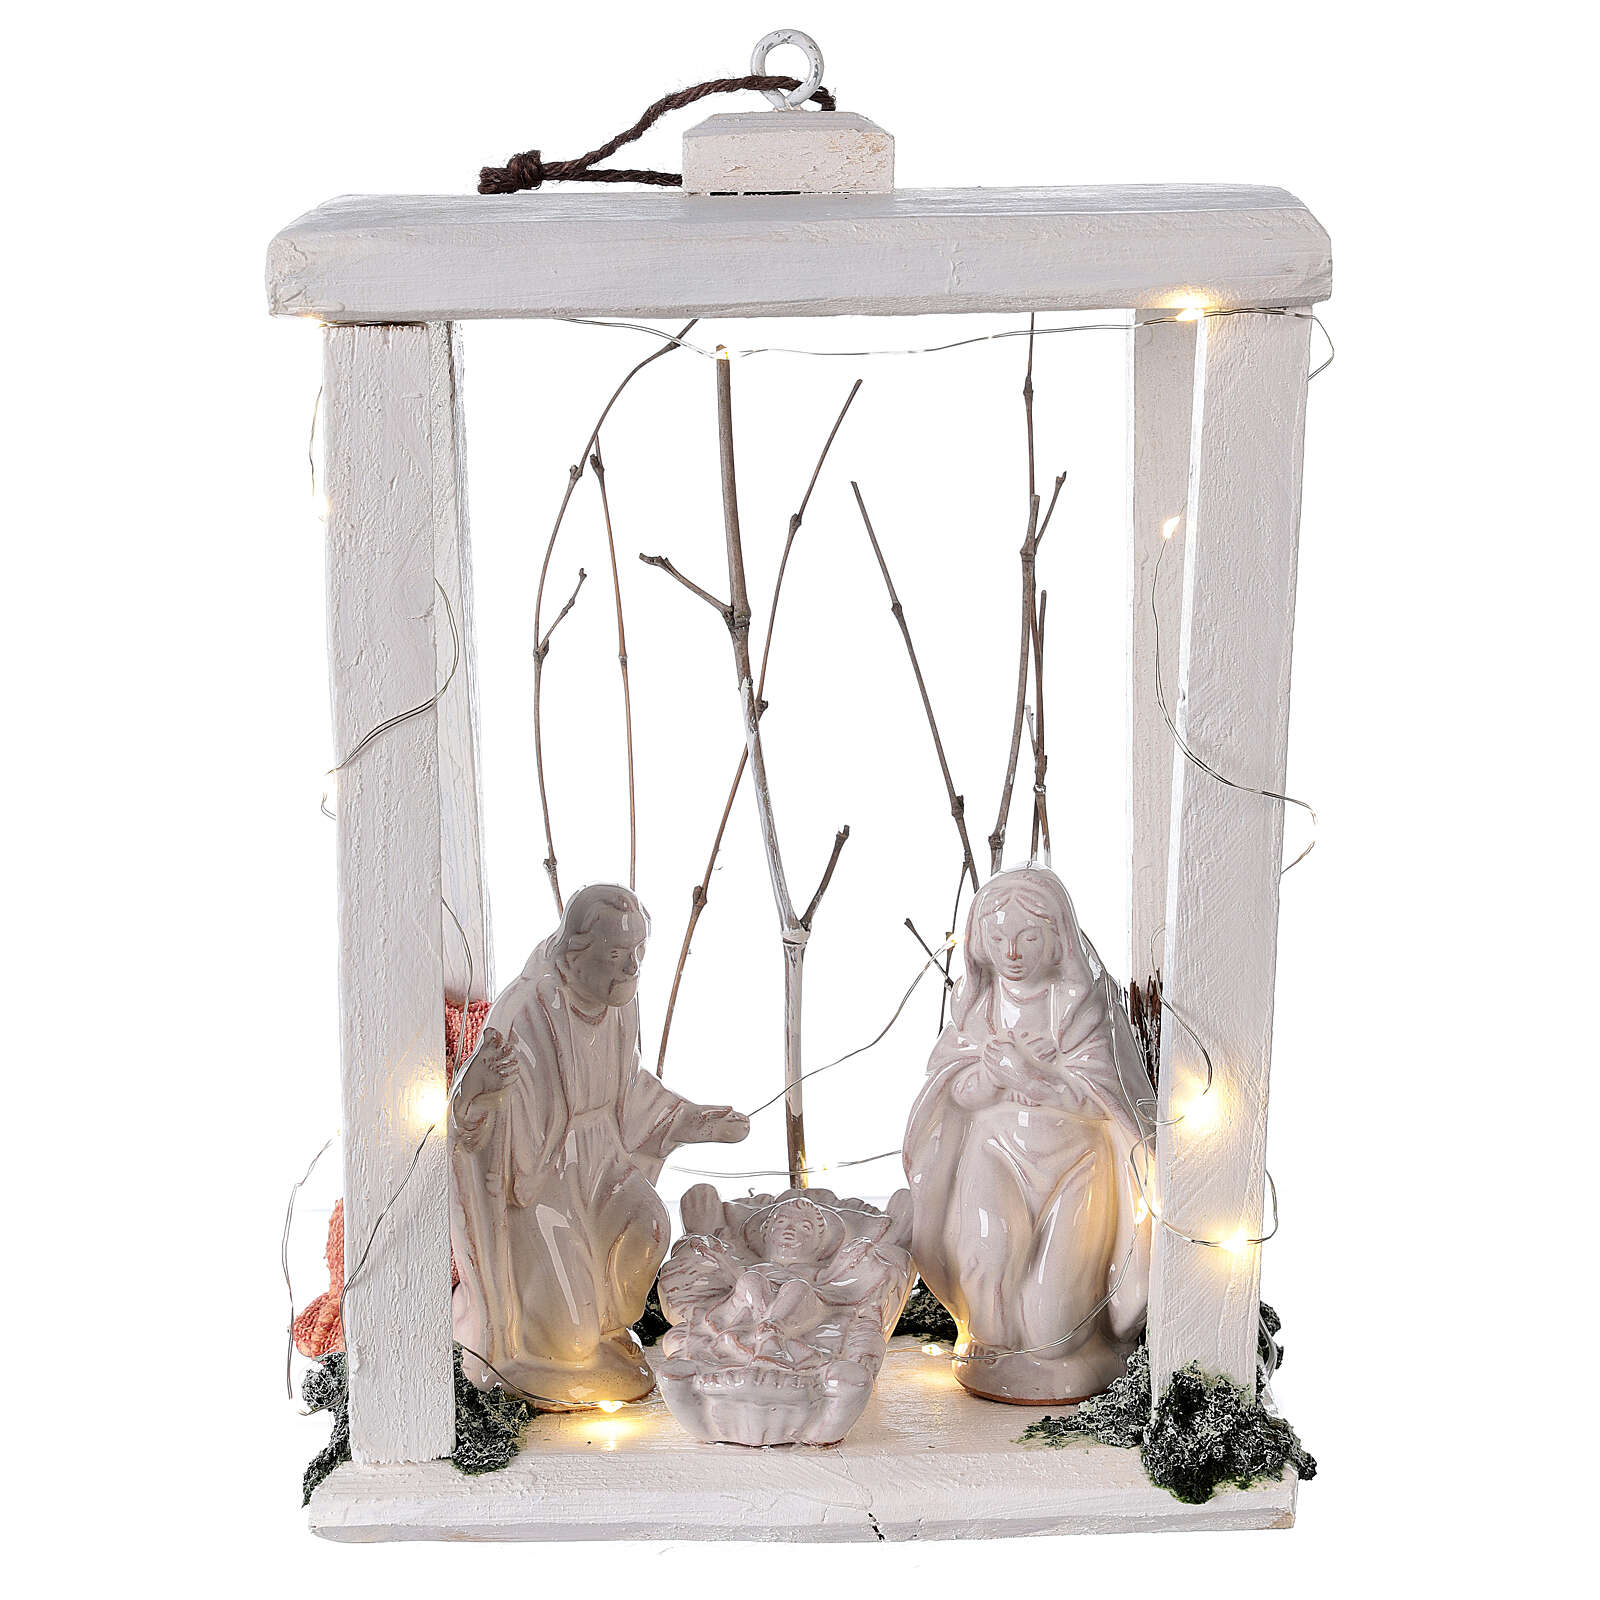 Wooden lantern with Holy Family in Deruta terracotta 30x22x18 micro LED light 4